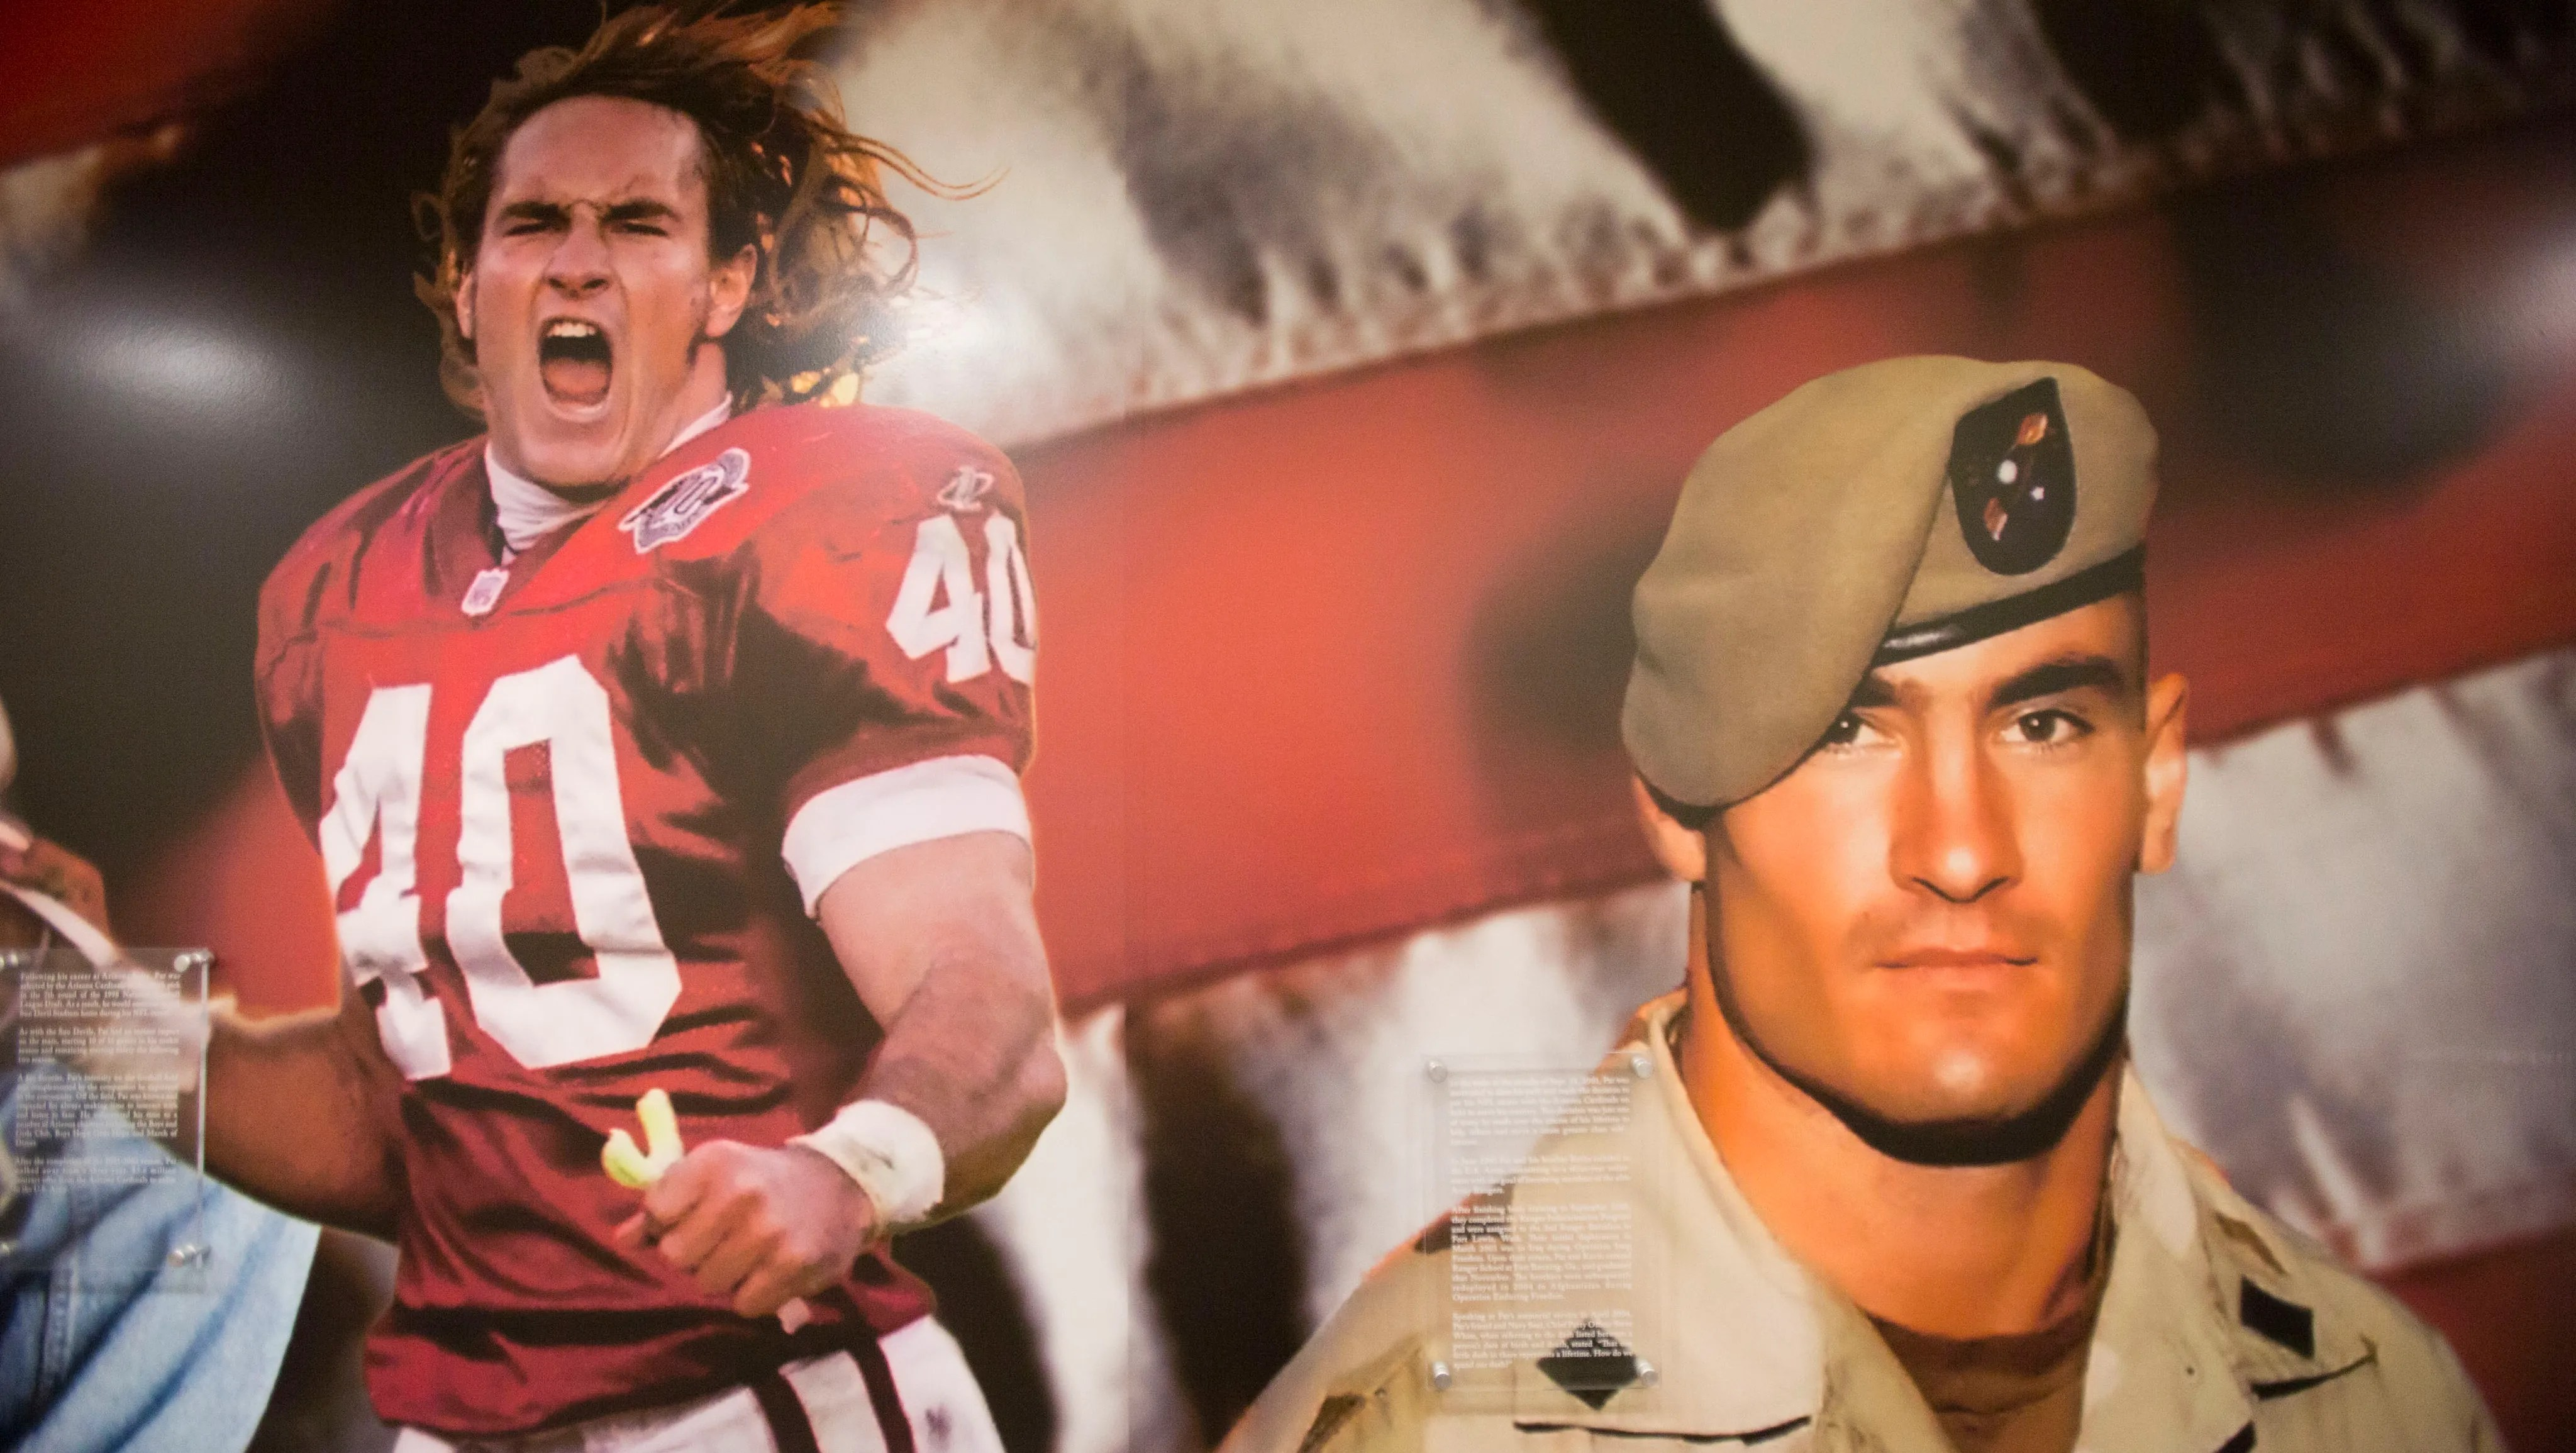 49ers Auto Electrical Wiring Diagram Audio Alpine Car Xqd000340pyu Pat Tillman Becomes Focus Of Social Media Outrage Over